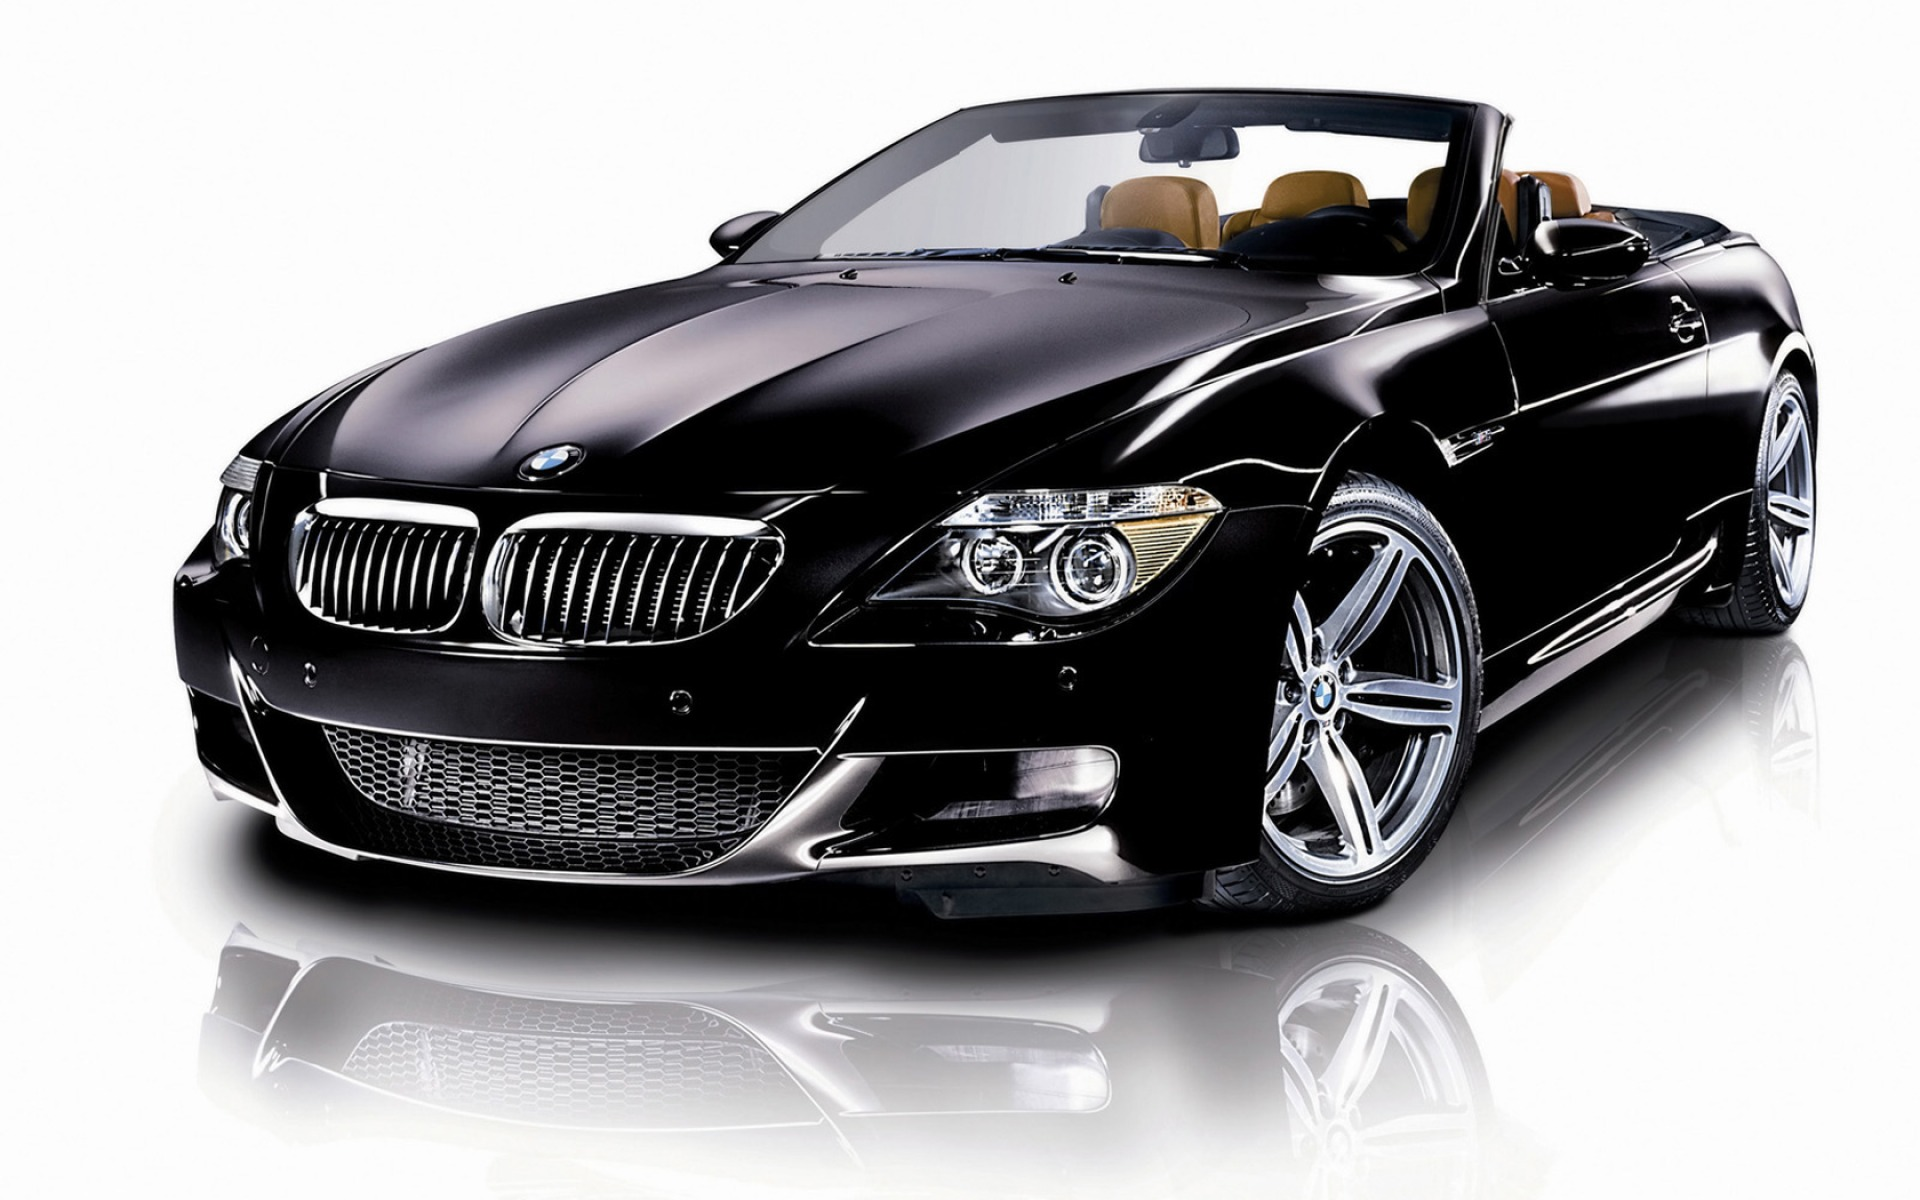 Ultrablogus  Winning Bmw Car Wallpaper Wallpapers For Free Download About   With Excellent Bmw M Convertible Wallpaper Bmw Cars With Appealing Nova Interior Parts Also Cadillac Allante Interior In Addition Dodge Viper Interior Upgrades And  Gmc Sierra Interior As Well As How To Install Interior Led Lights Additionally Mga Interior From Allfreedownloadcom With Ultrablogus  Excellent Bmw Car Wallpaper Wallpapers For Free Download About   With Appealing Bmw M Convertible Wallpaper Bmw Cars And Winning Nova Interior Parts Also Cadillac Allante Interior In Addition Dodge Viper Interior Upgrades From Allfreedownloadcom